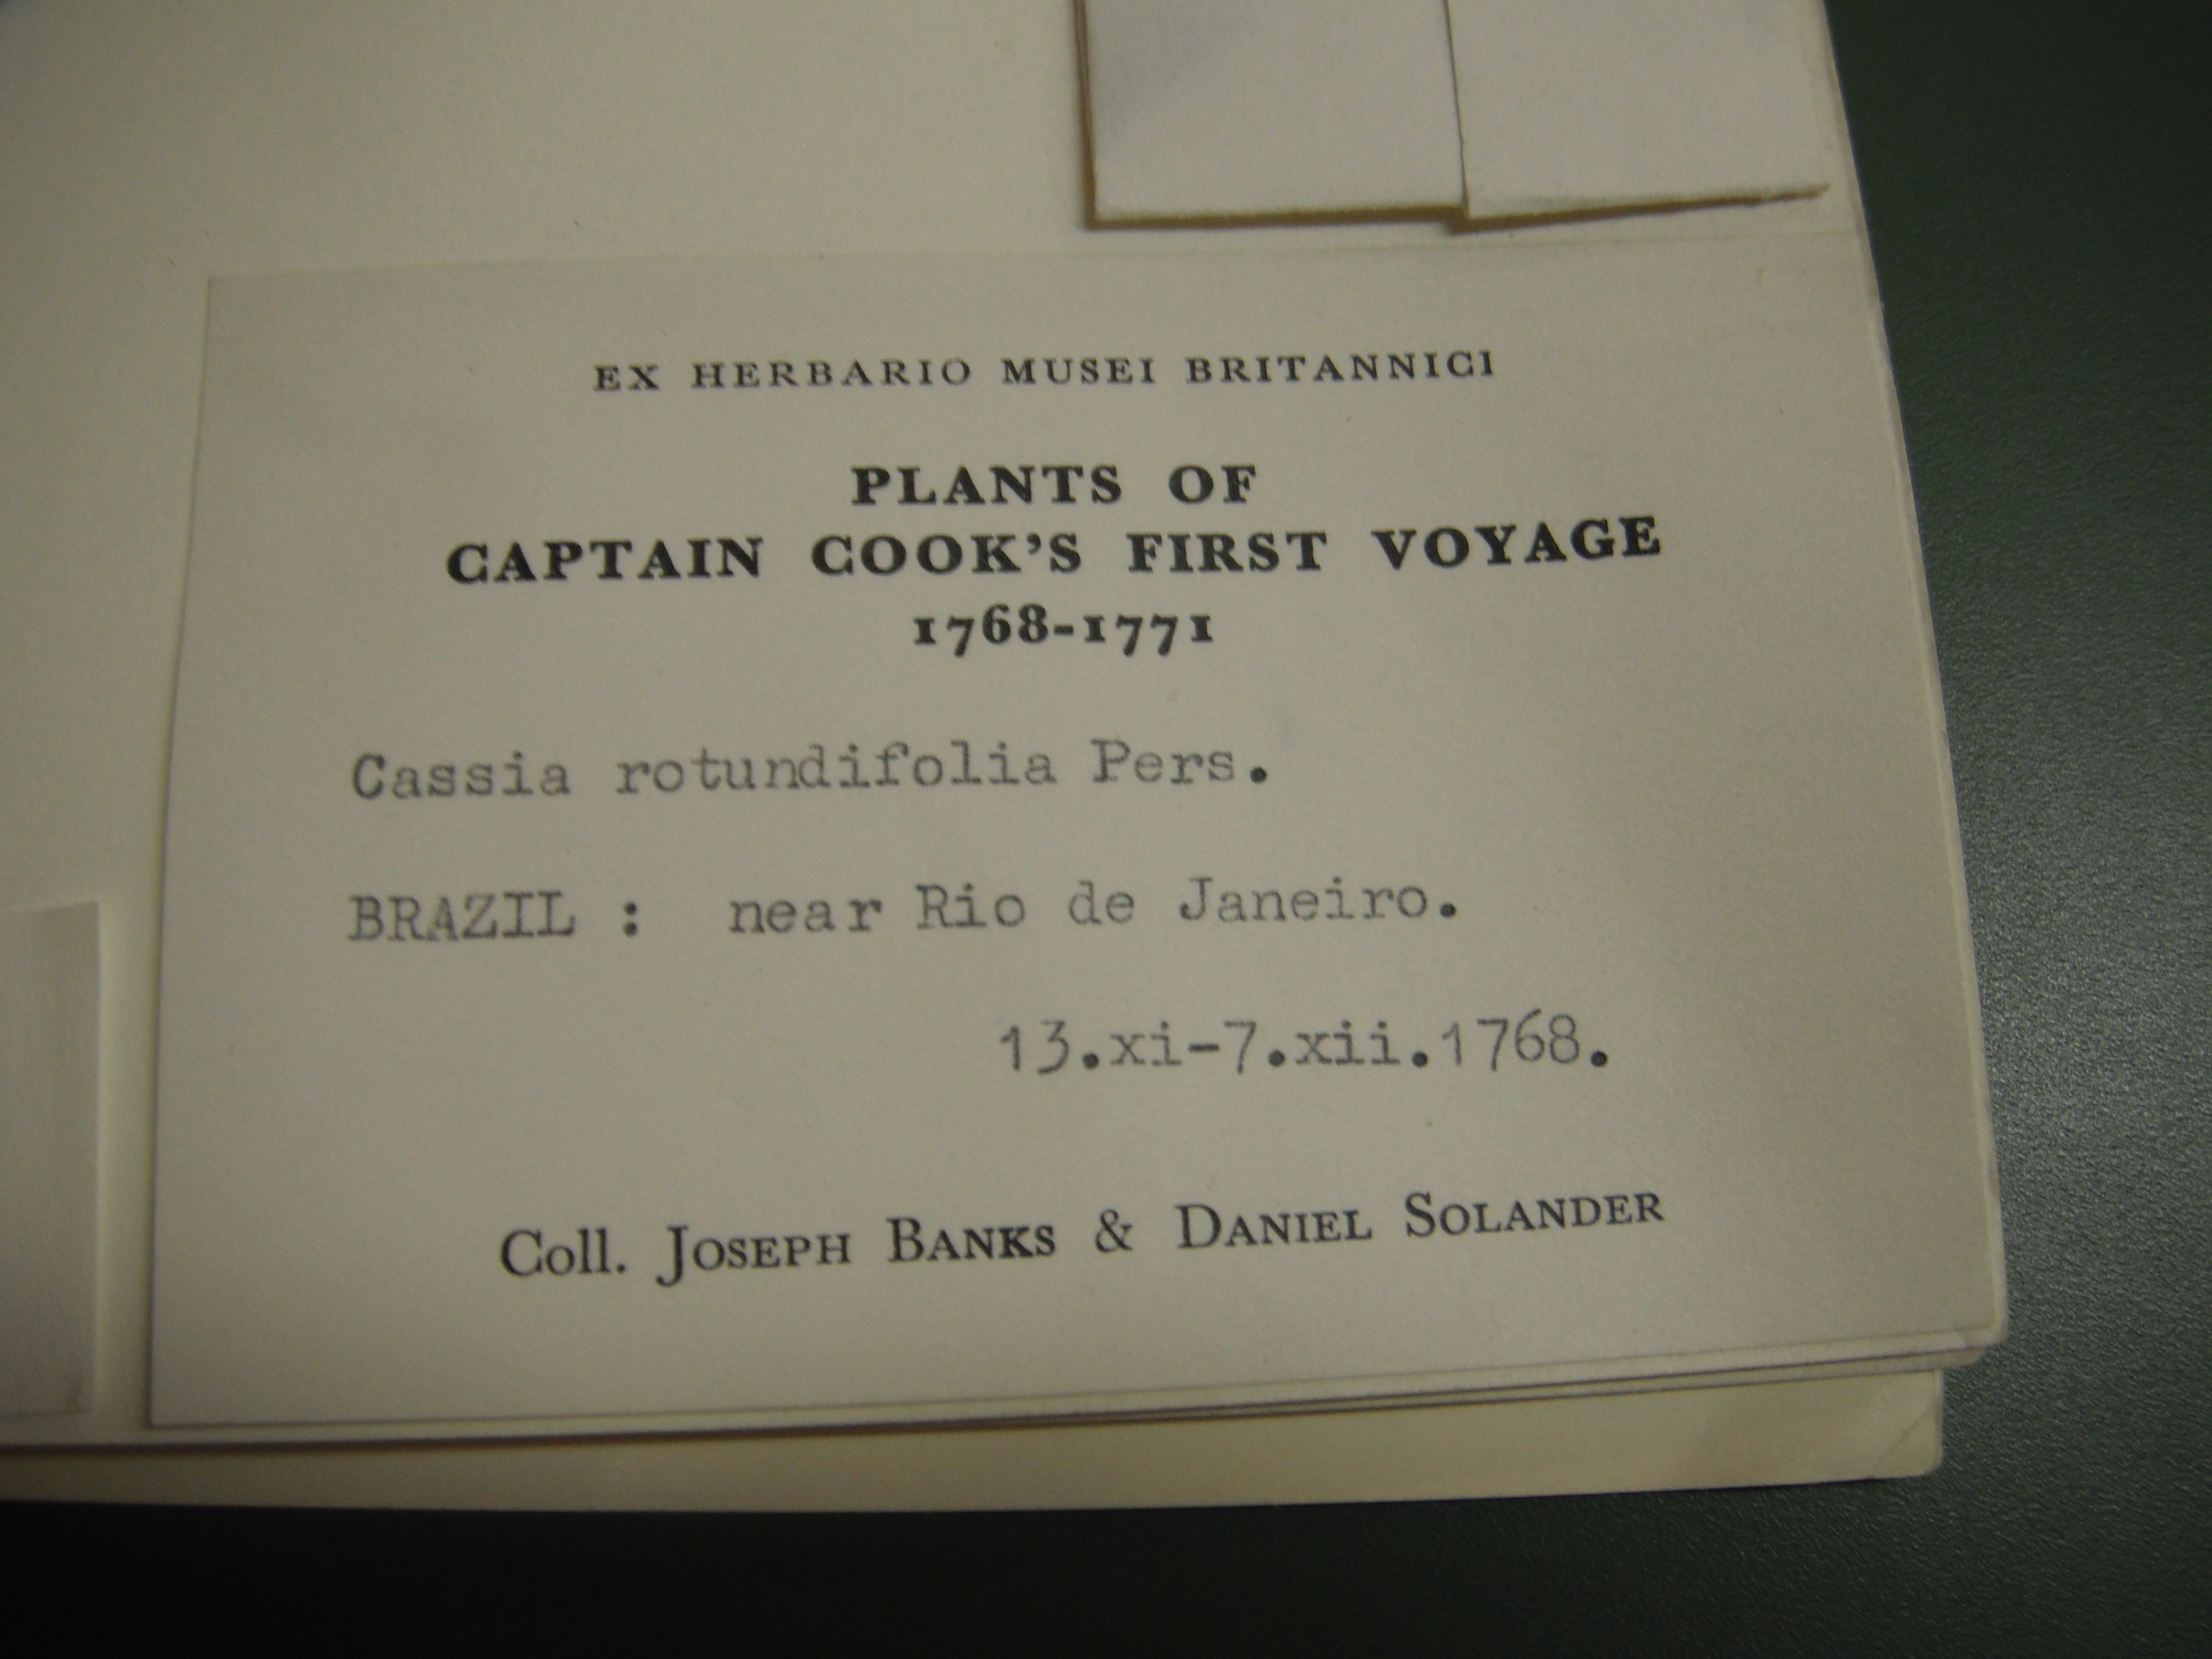 Specimen from Captain Cook's voyage